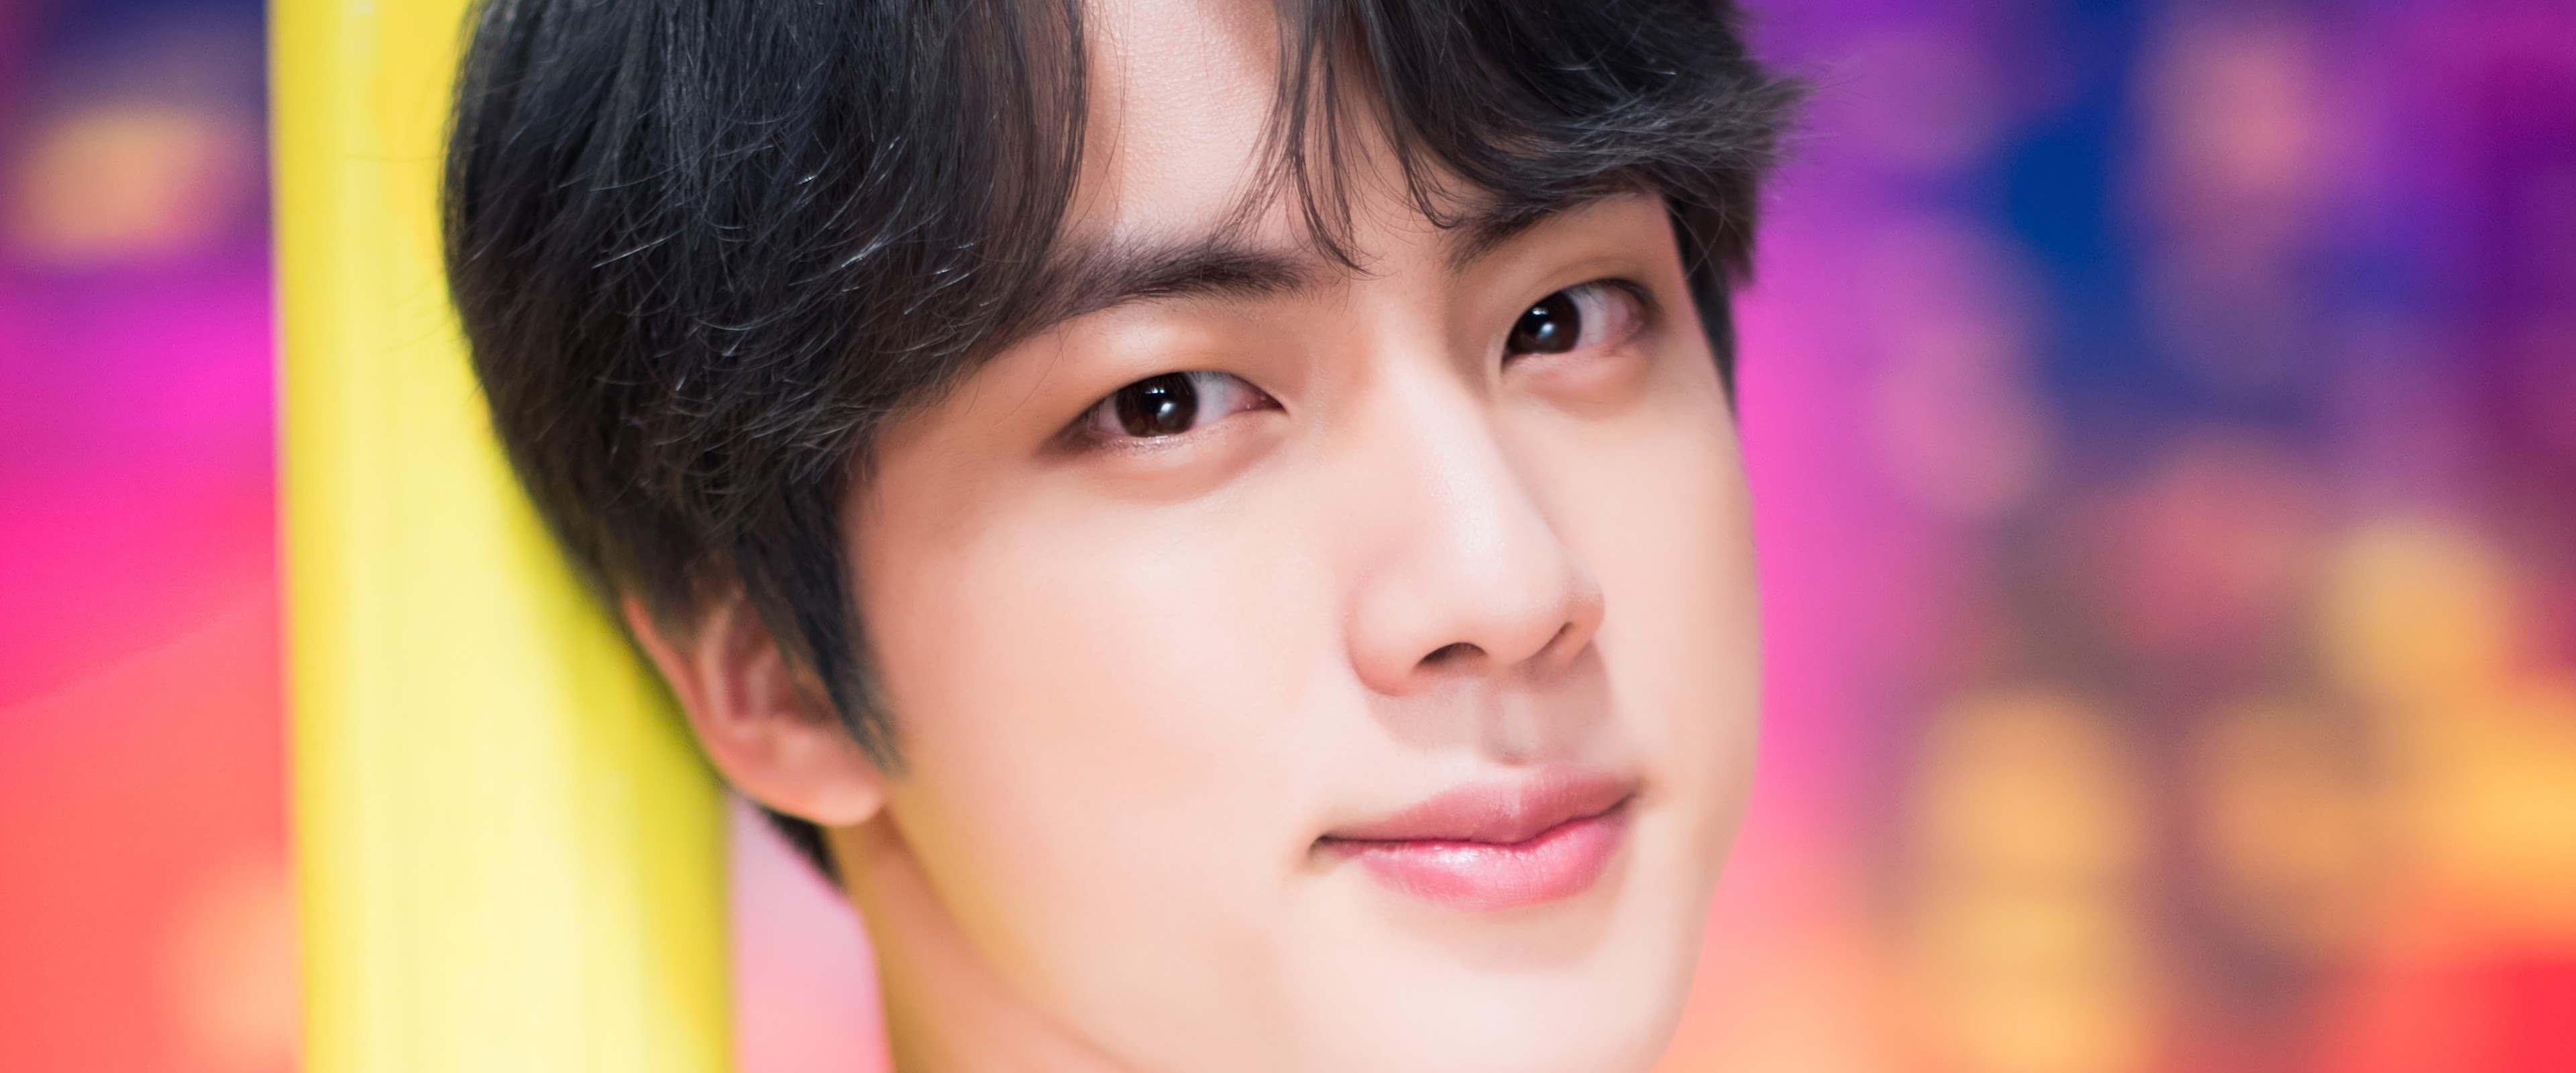 jin bts boy with luv uhdpaper.com 4K 83